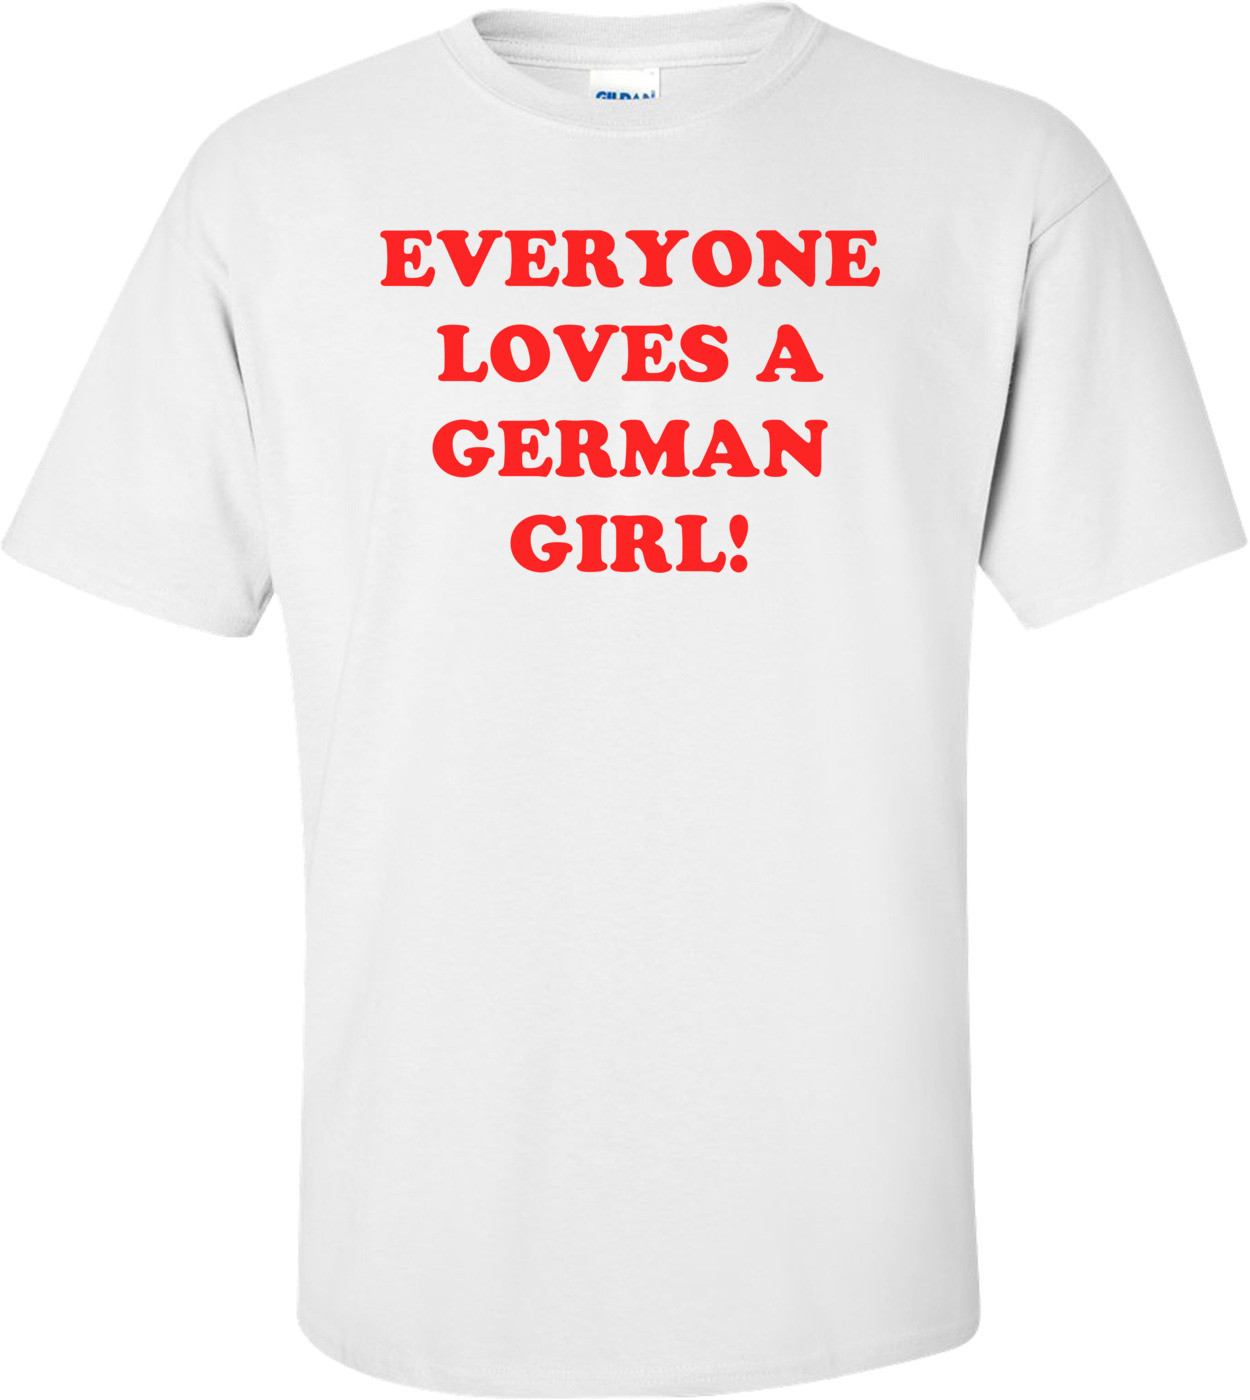 Everyone Loves A German Girl! Shirt